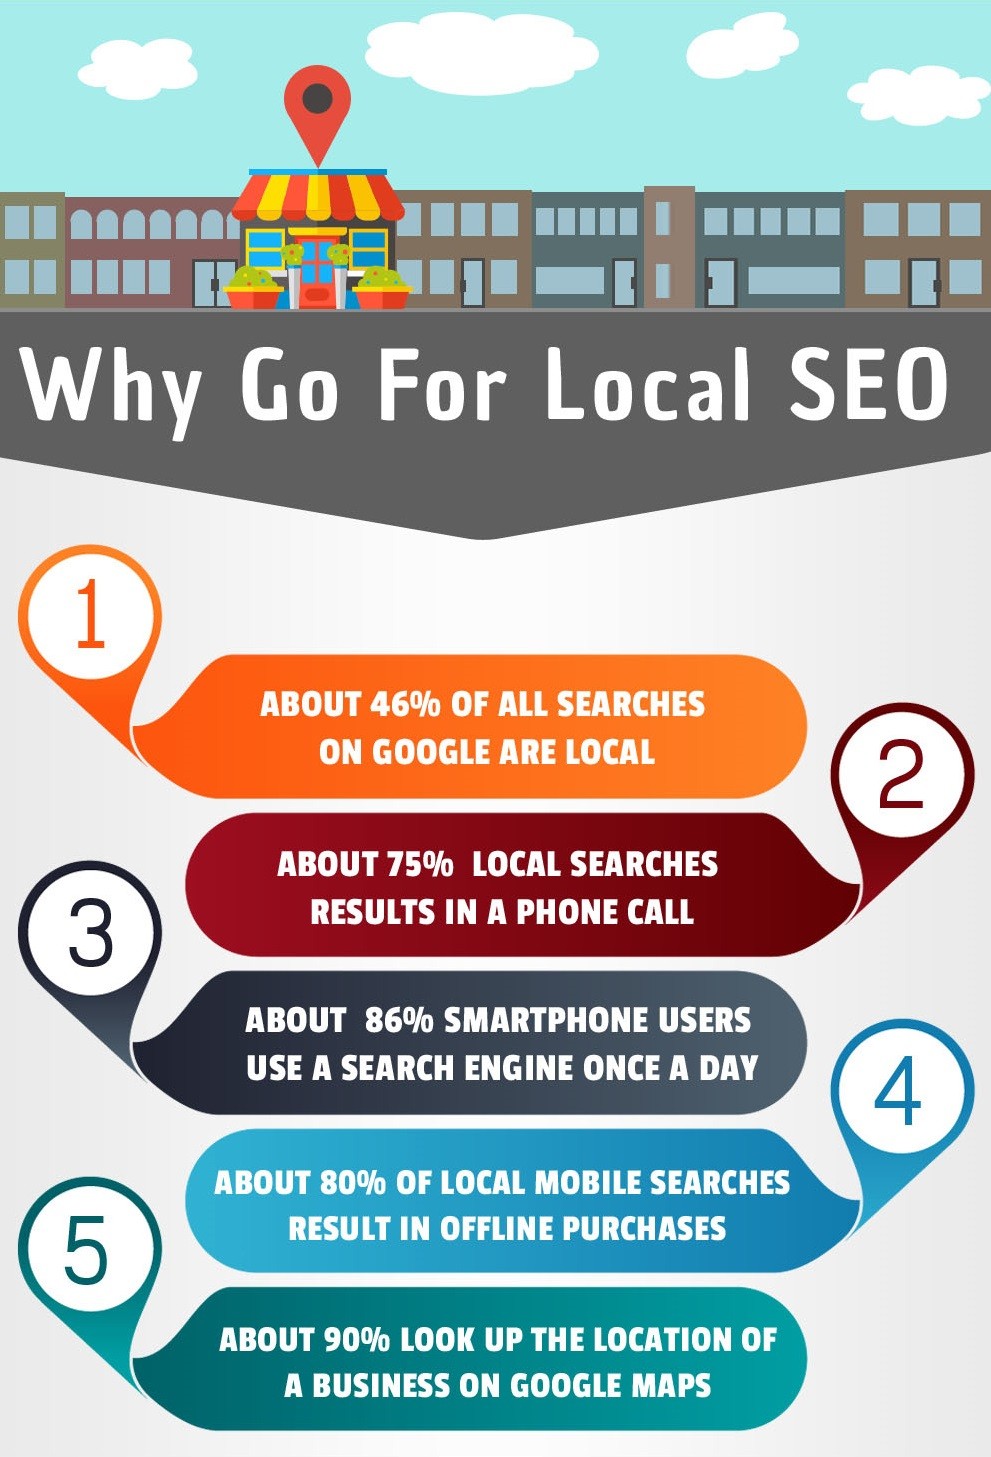 How Local SEO Services Can Help You